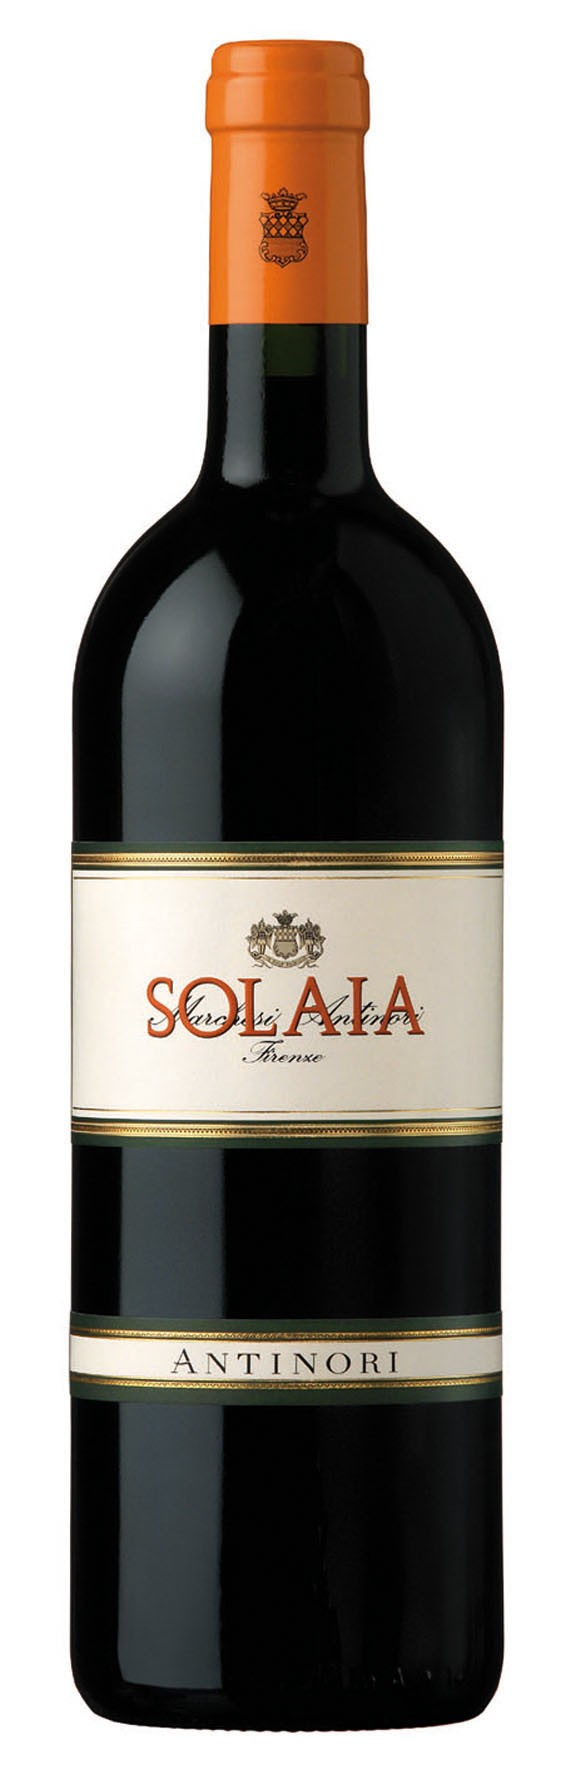 Solaia 2008 Marchese Antinori IGT, 0,75l.